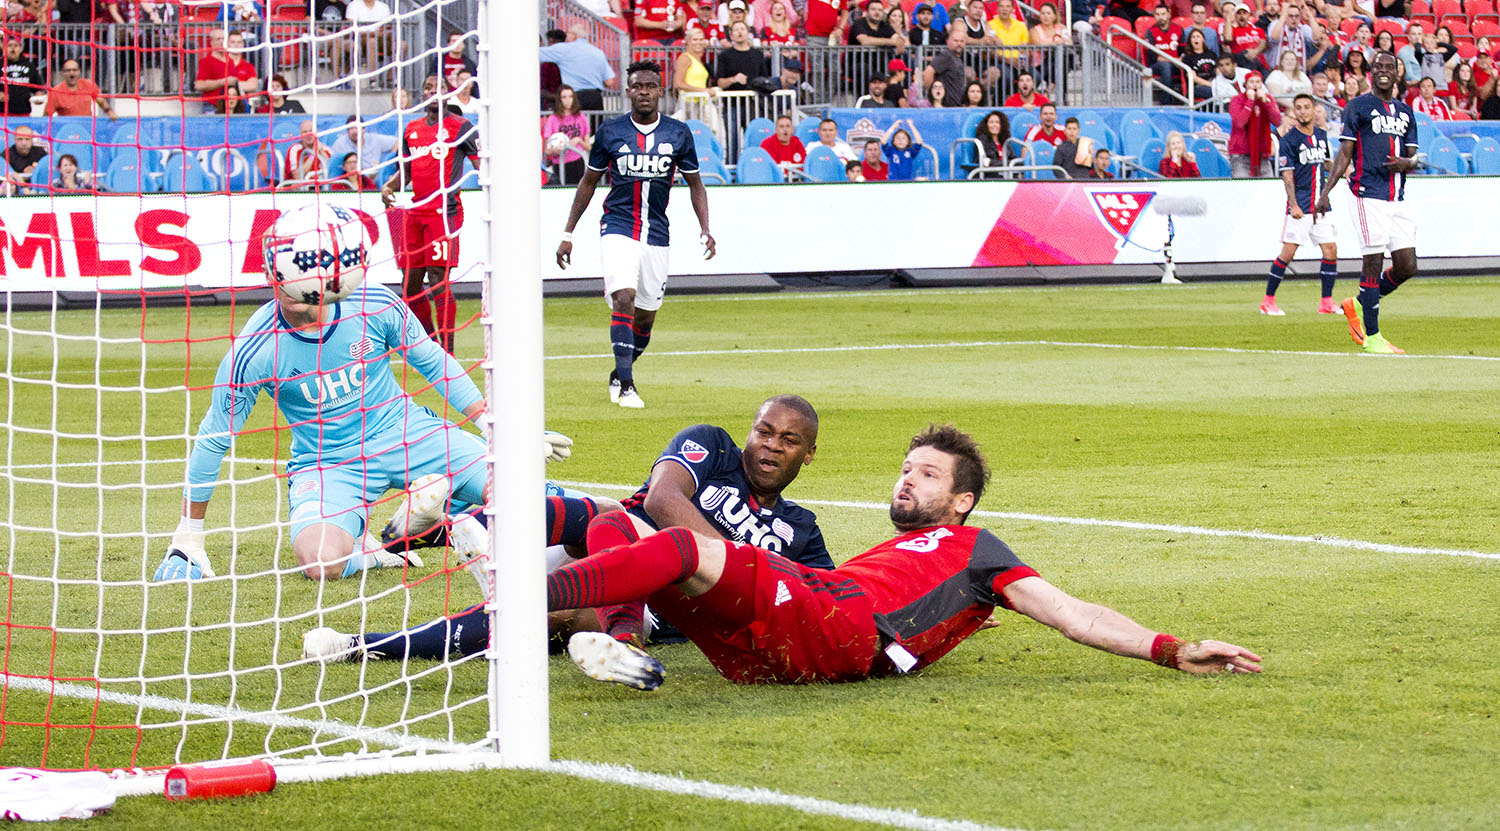 Drew Moor gets a ball across the box from Tsubasa Endoh and slides it past New England goalkeeper Cody Cropper to make it 1-0 in the first half of tonight's Toronto FC game. Image by Dennis Marciniak of denMAR